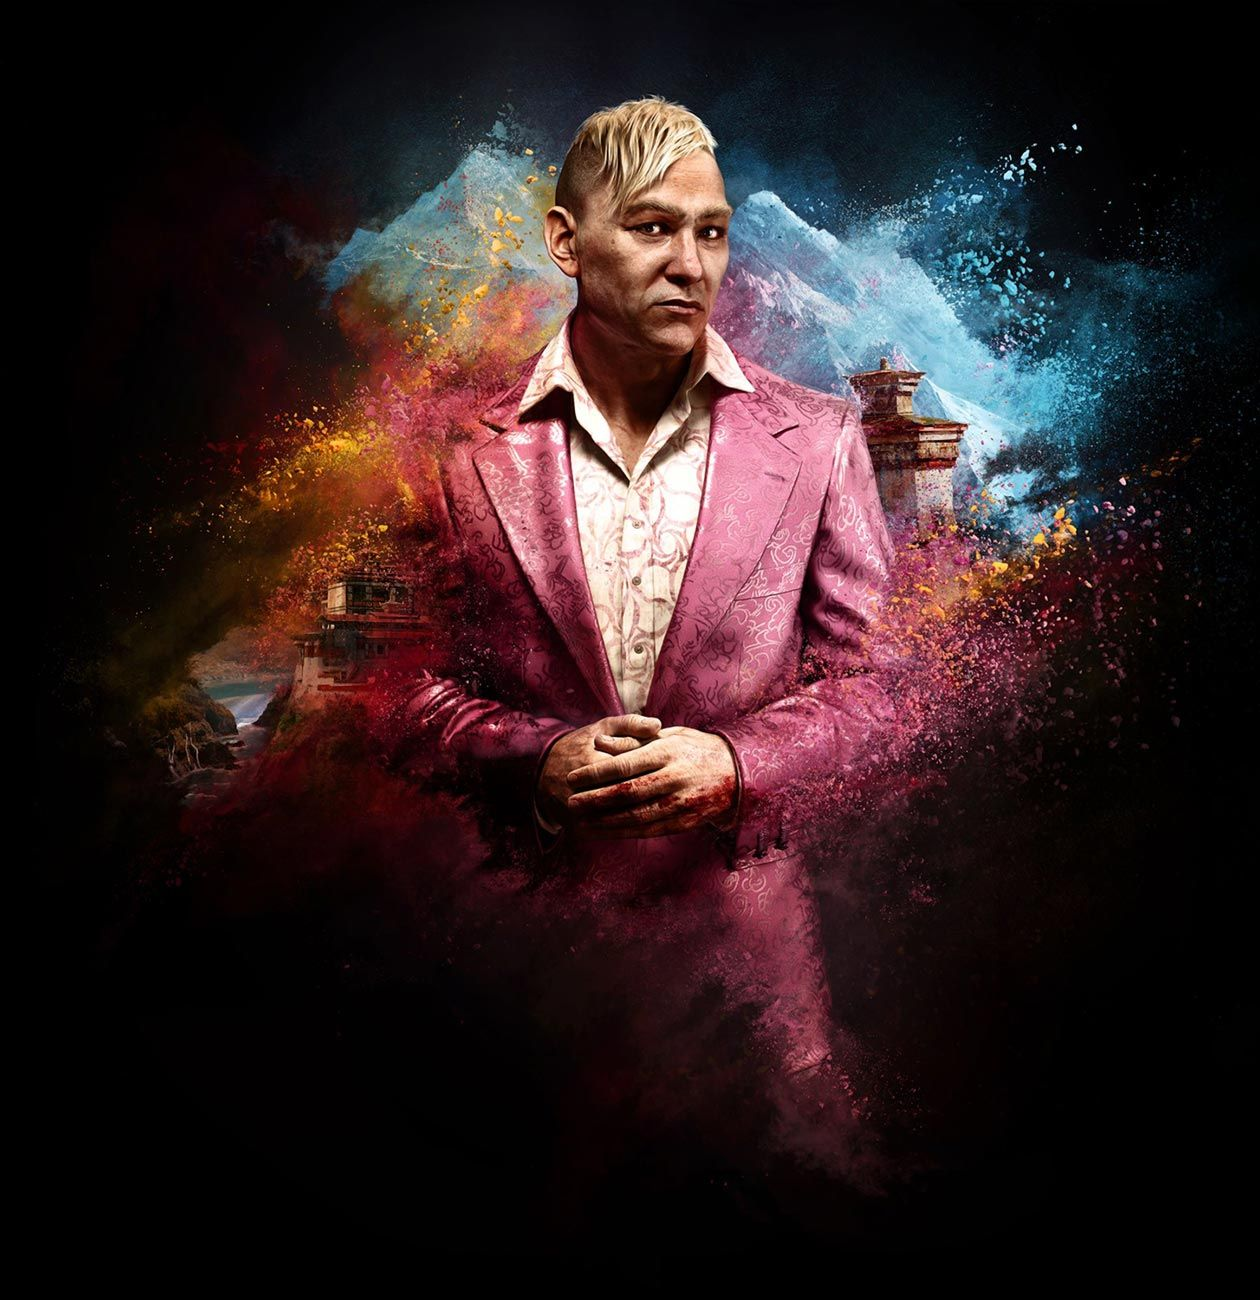 Pagan Min Concept Art Far Cry 4 Xbox One Xbox 360 Ps3 Ps4 Windows Far Cry 4 Pagan Video Game Posters